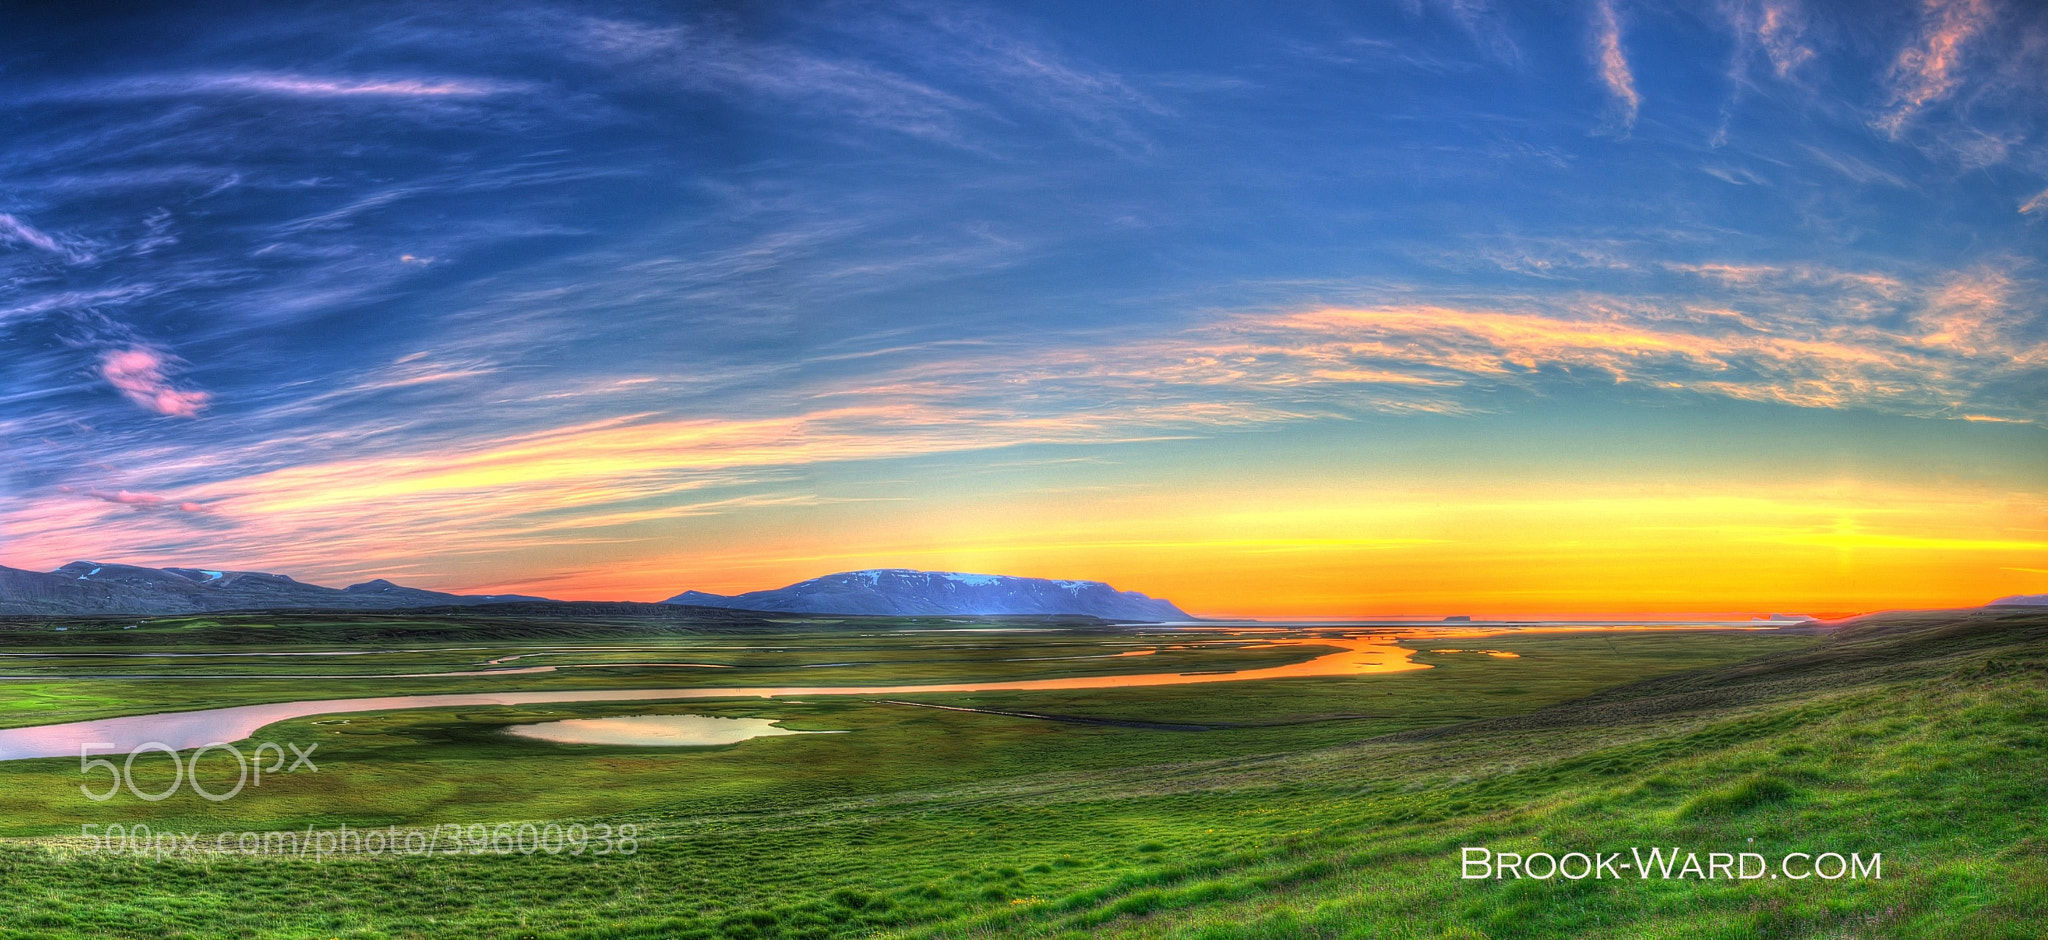 Photograph Iceland Sunset by Brook Ward on 500px